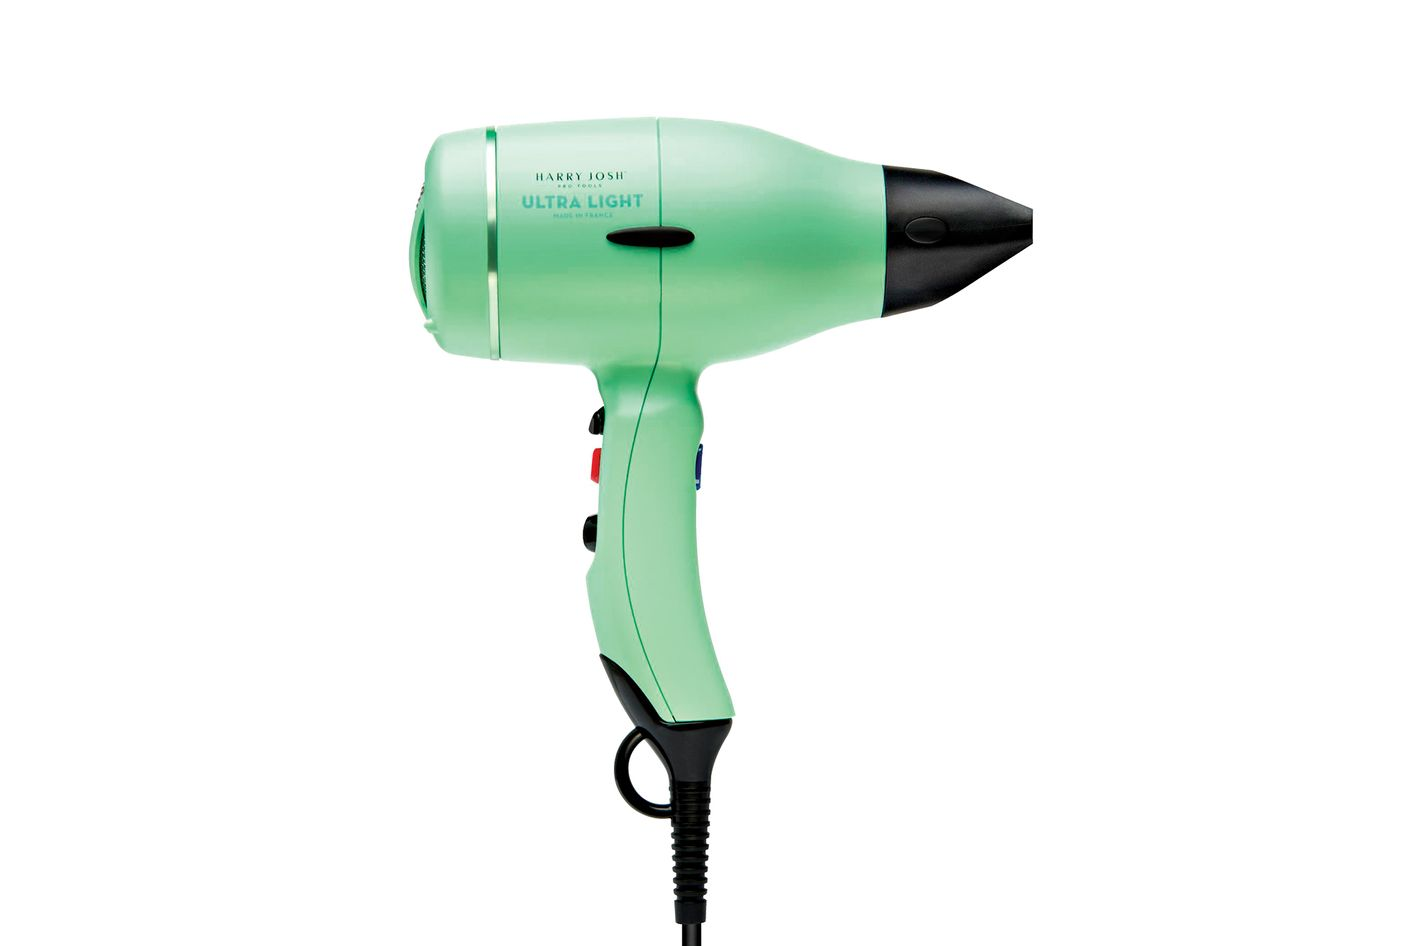 Harry Josh Ultra Light Pro Dryer